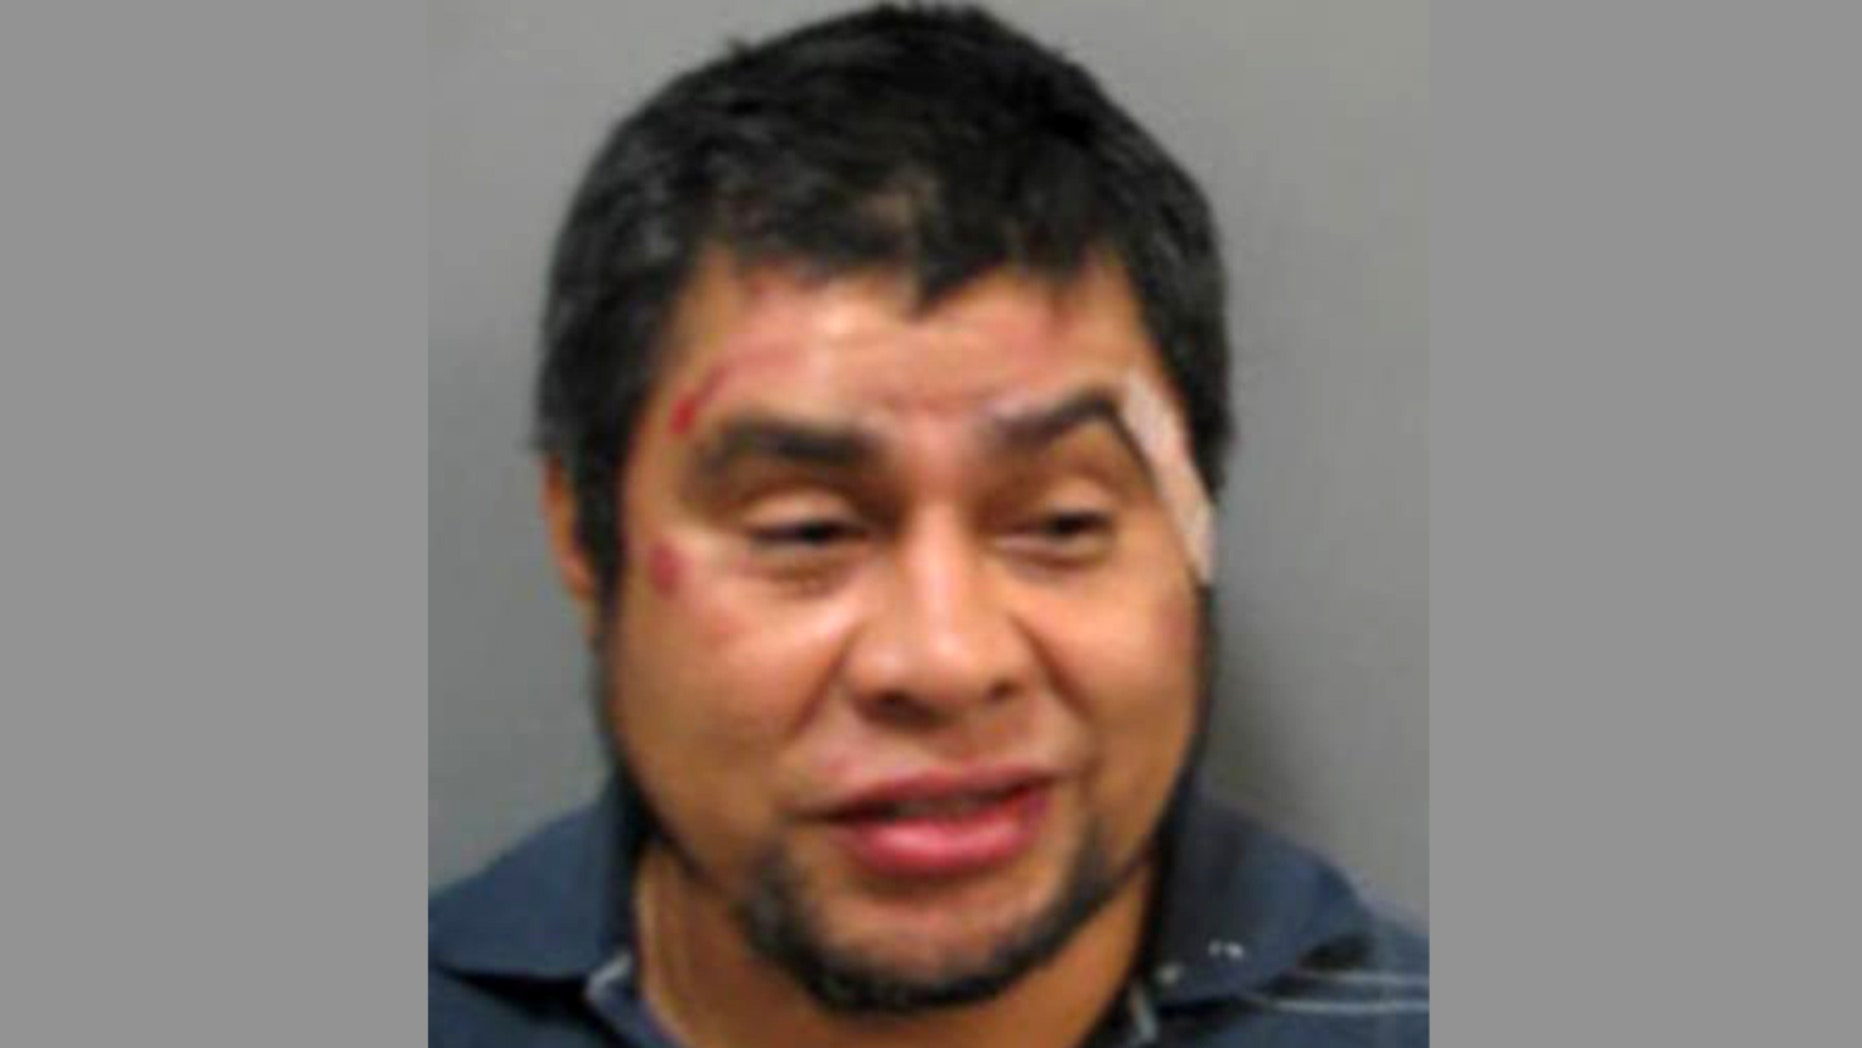 Mug shot for Salvador Gomez-Lopez, who was arrested in Maryland after allegedly urinating in public and slashing a man who told him to stop.